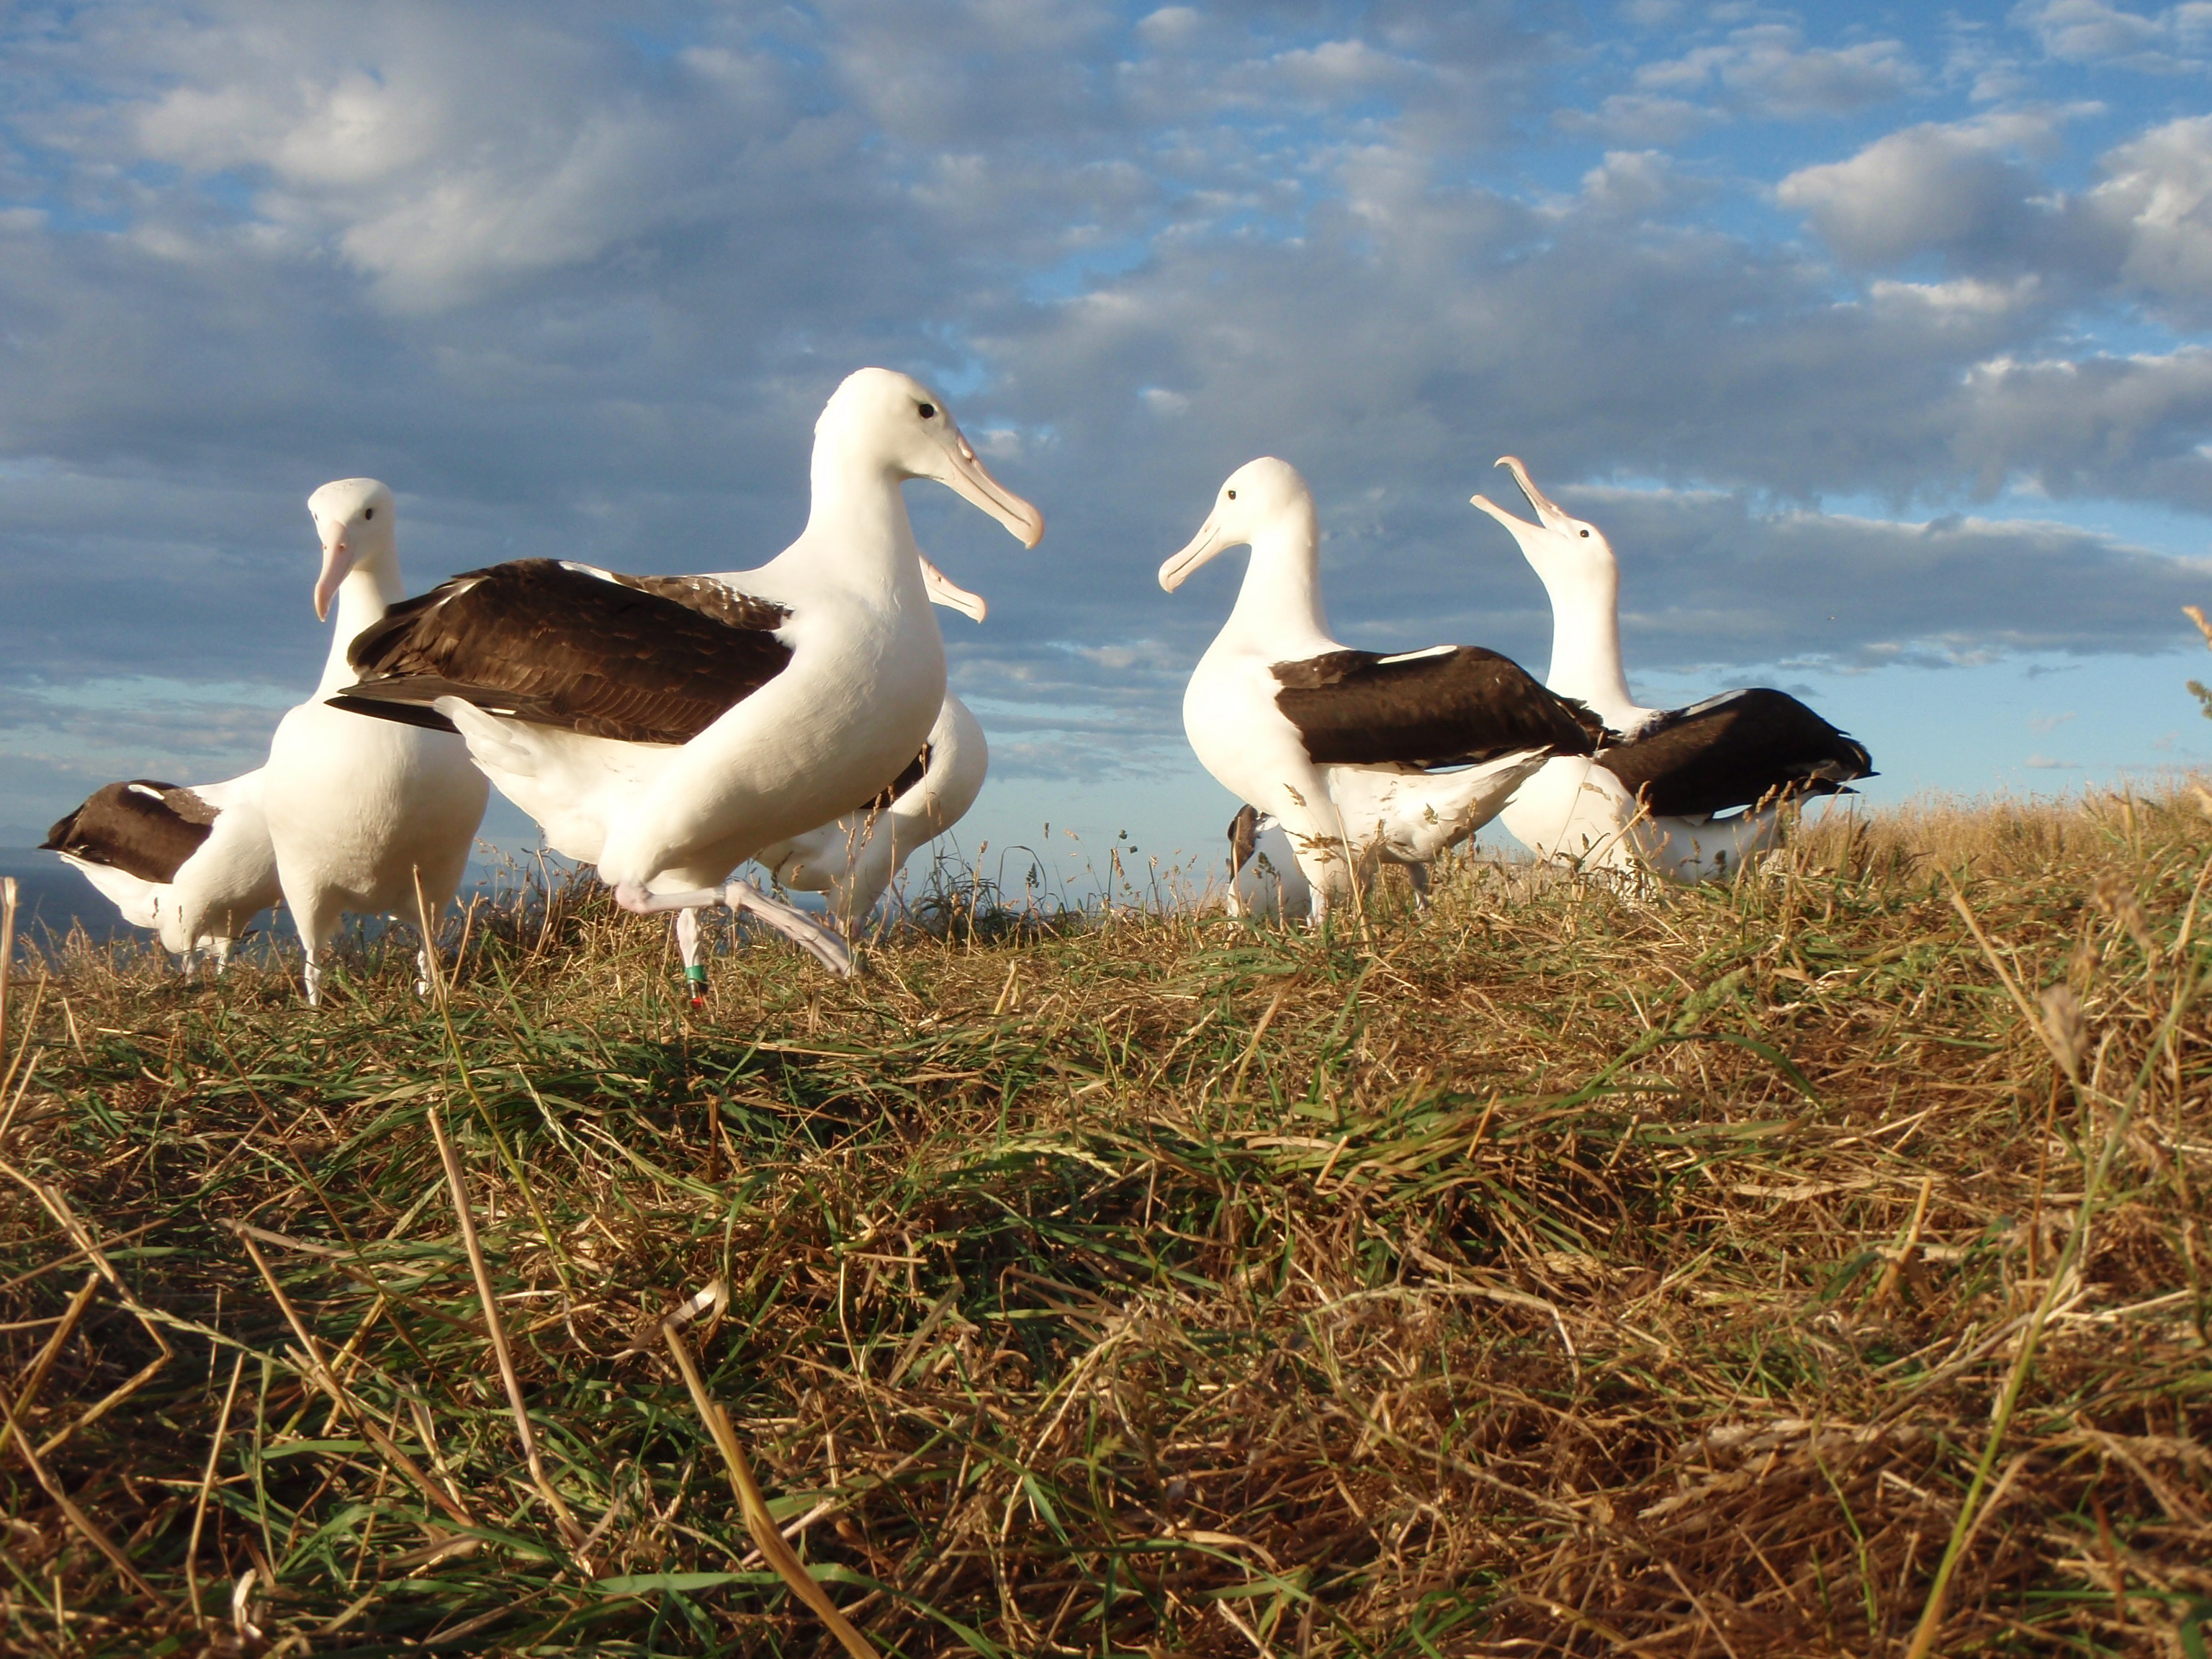 Northern royal albatross courtship